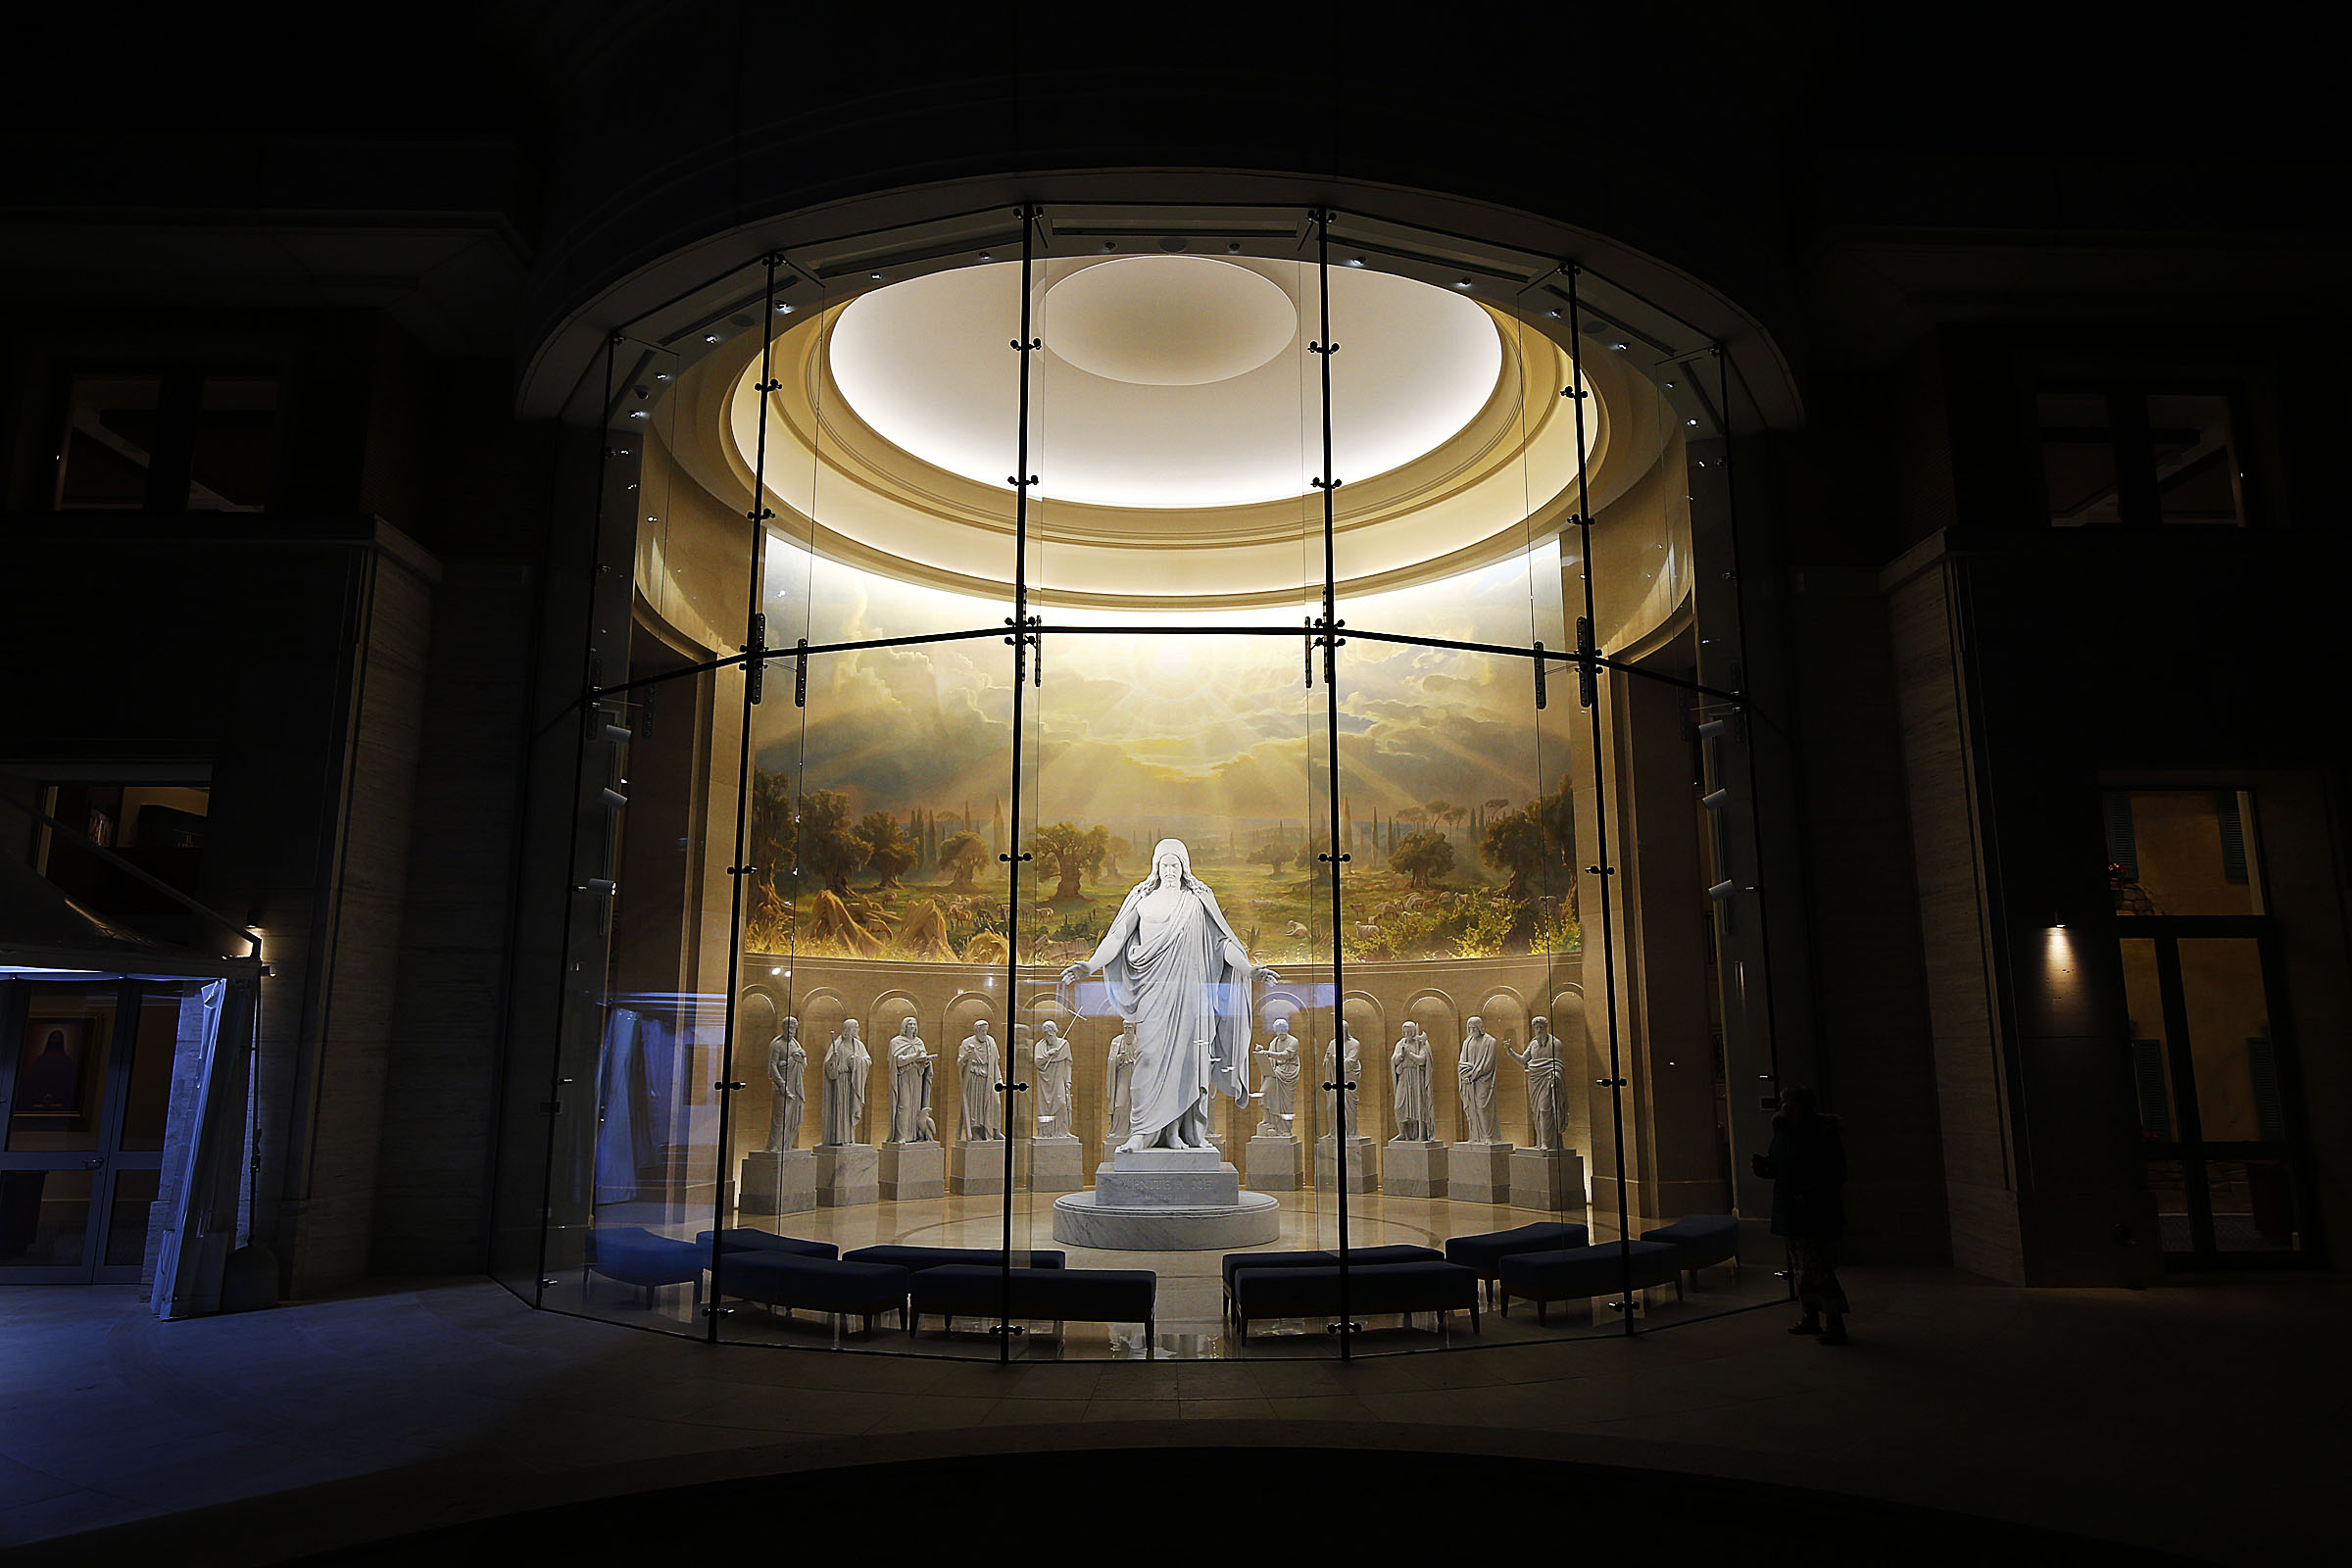 Statues of Christ and the Apostles are displayed in the Rome Temple Visitor's Center of The Church of Jesus Christ of Latter-day Saints in Rome, Italy on Sunday, Jan. 13, 2019.